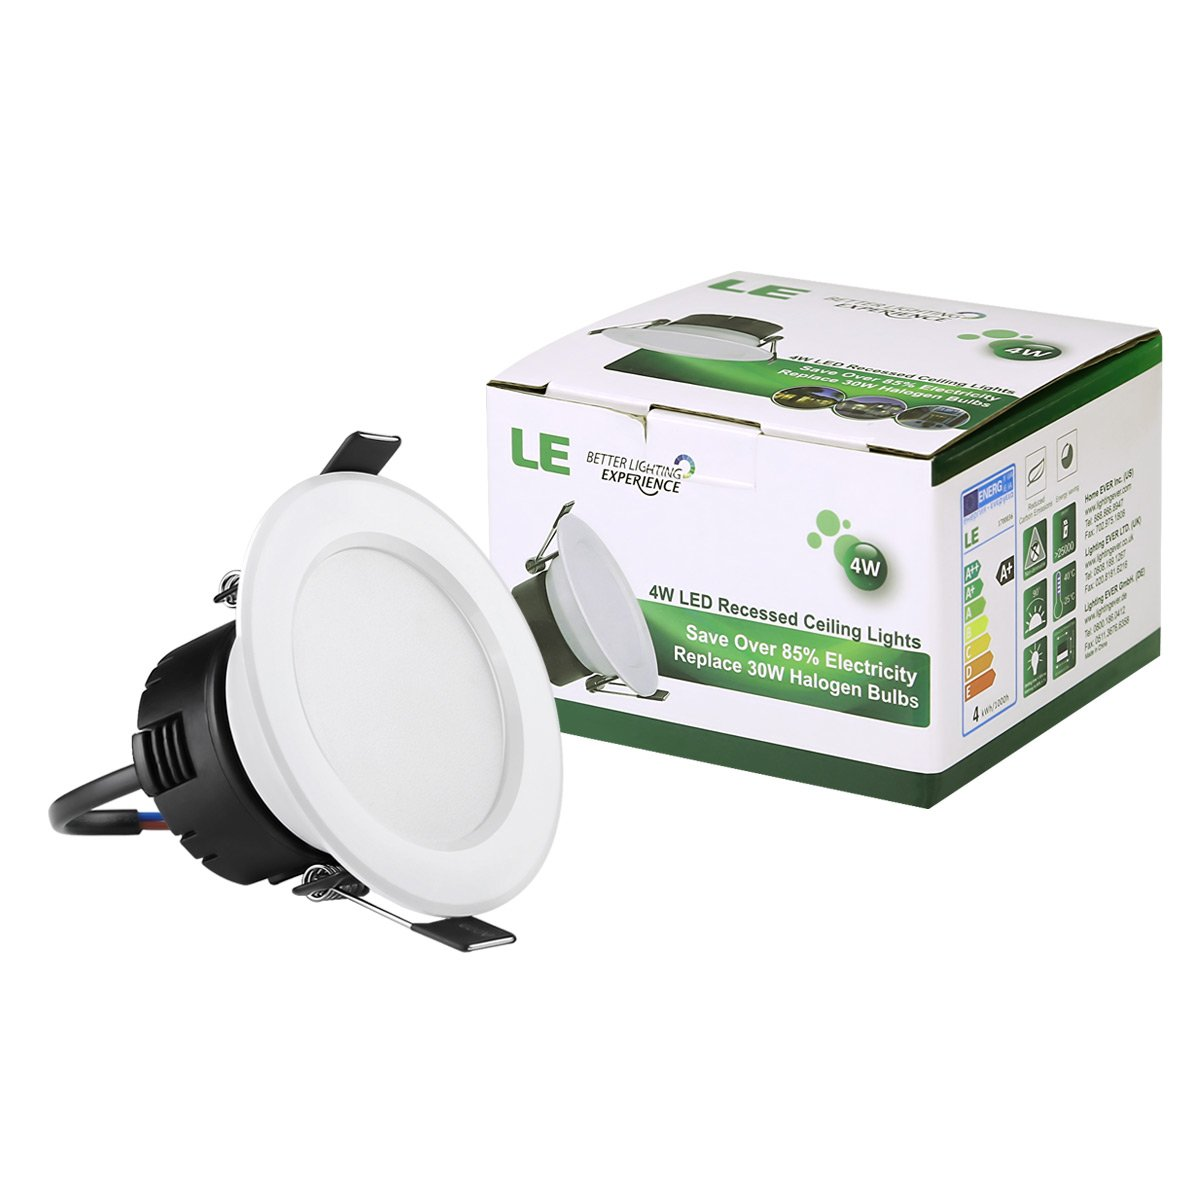 LE Pack of 4 Units 4W 3-Inch LED Recessed Lighting 30W Halogen Bulbs Equivalent Not Dimmable 210lm Daylight White 6000K 90° Beam Angle ...  sc 1 st  Amazon.com & LE Pack of 4 Units 4W 3-Inch LED Recessed Lighting 30W Halogen ... azcodes.com